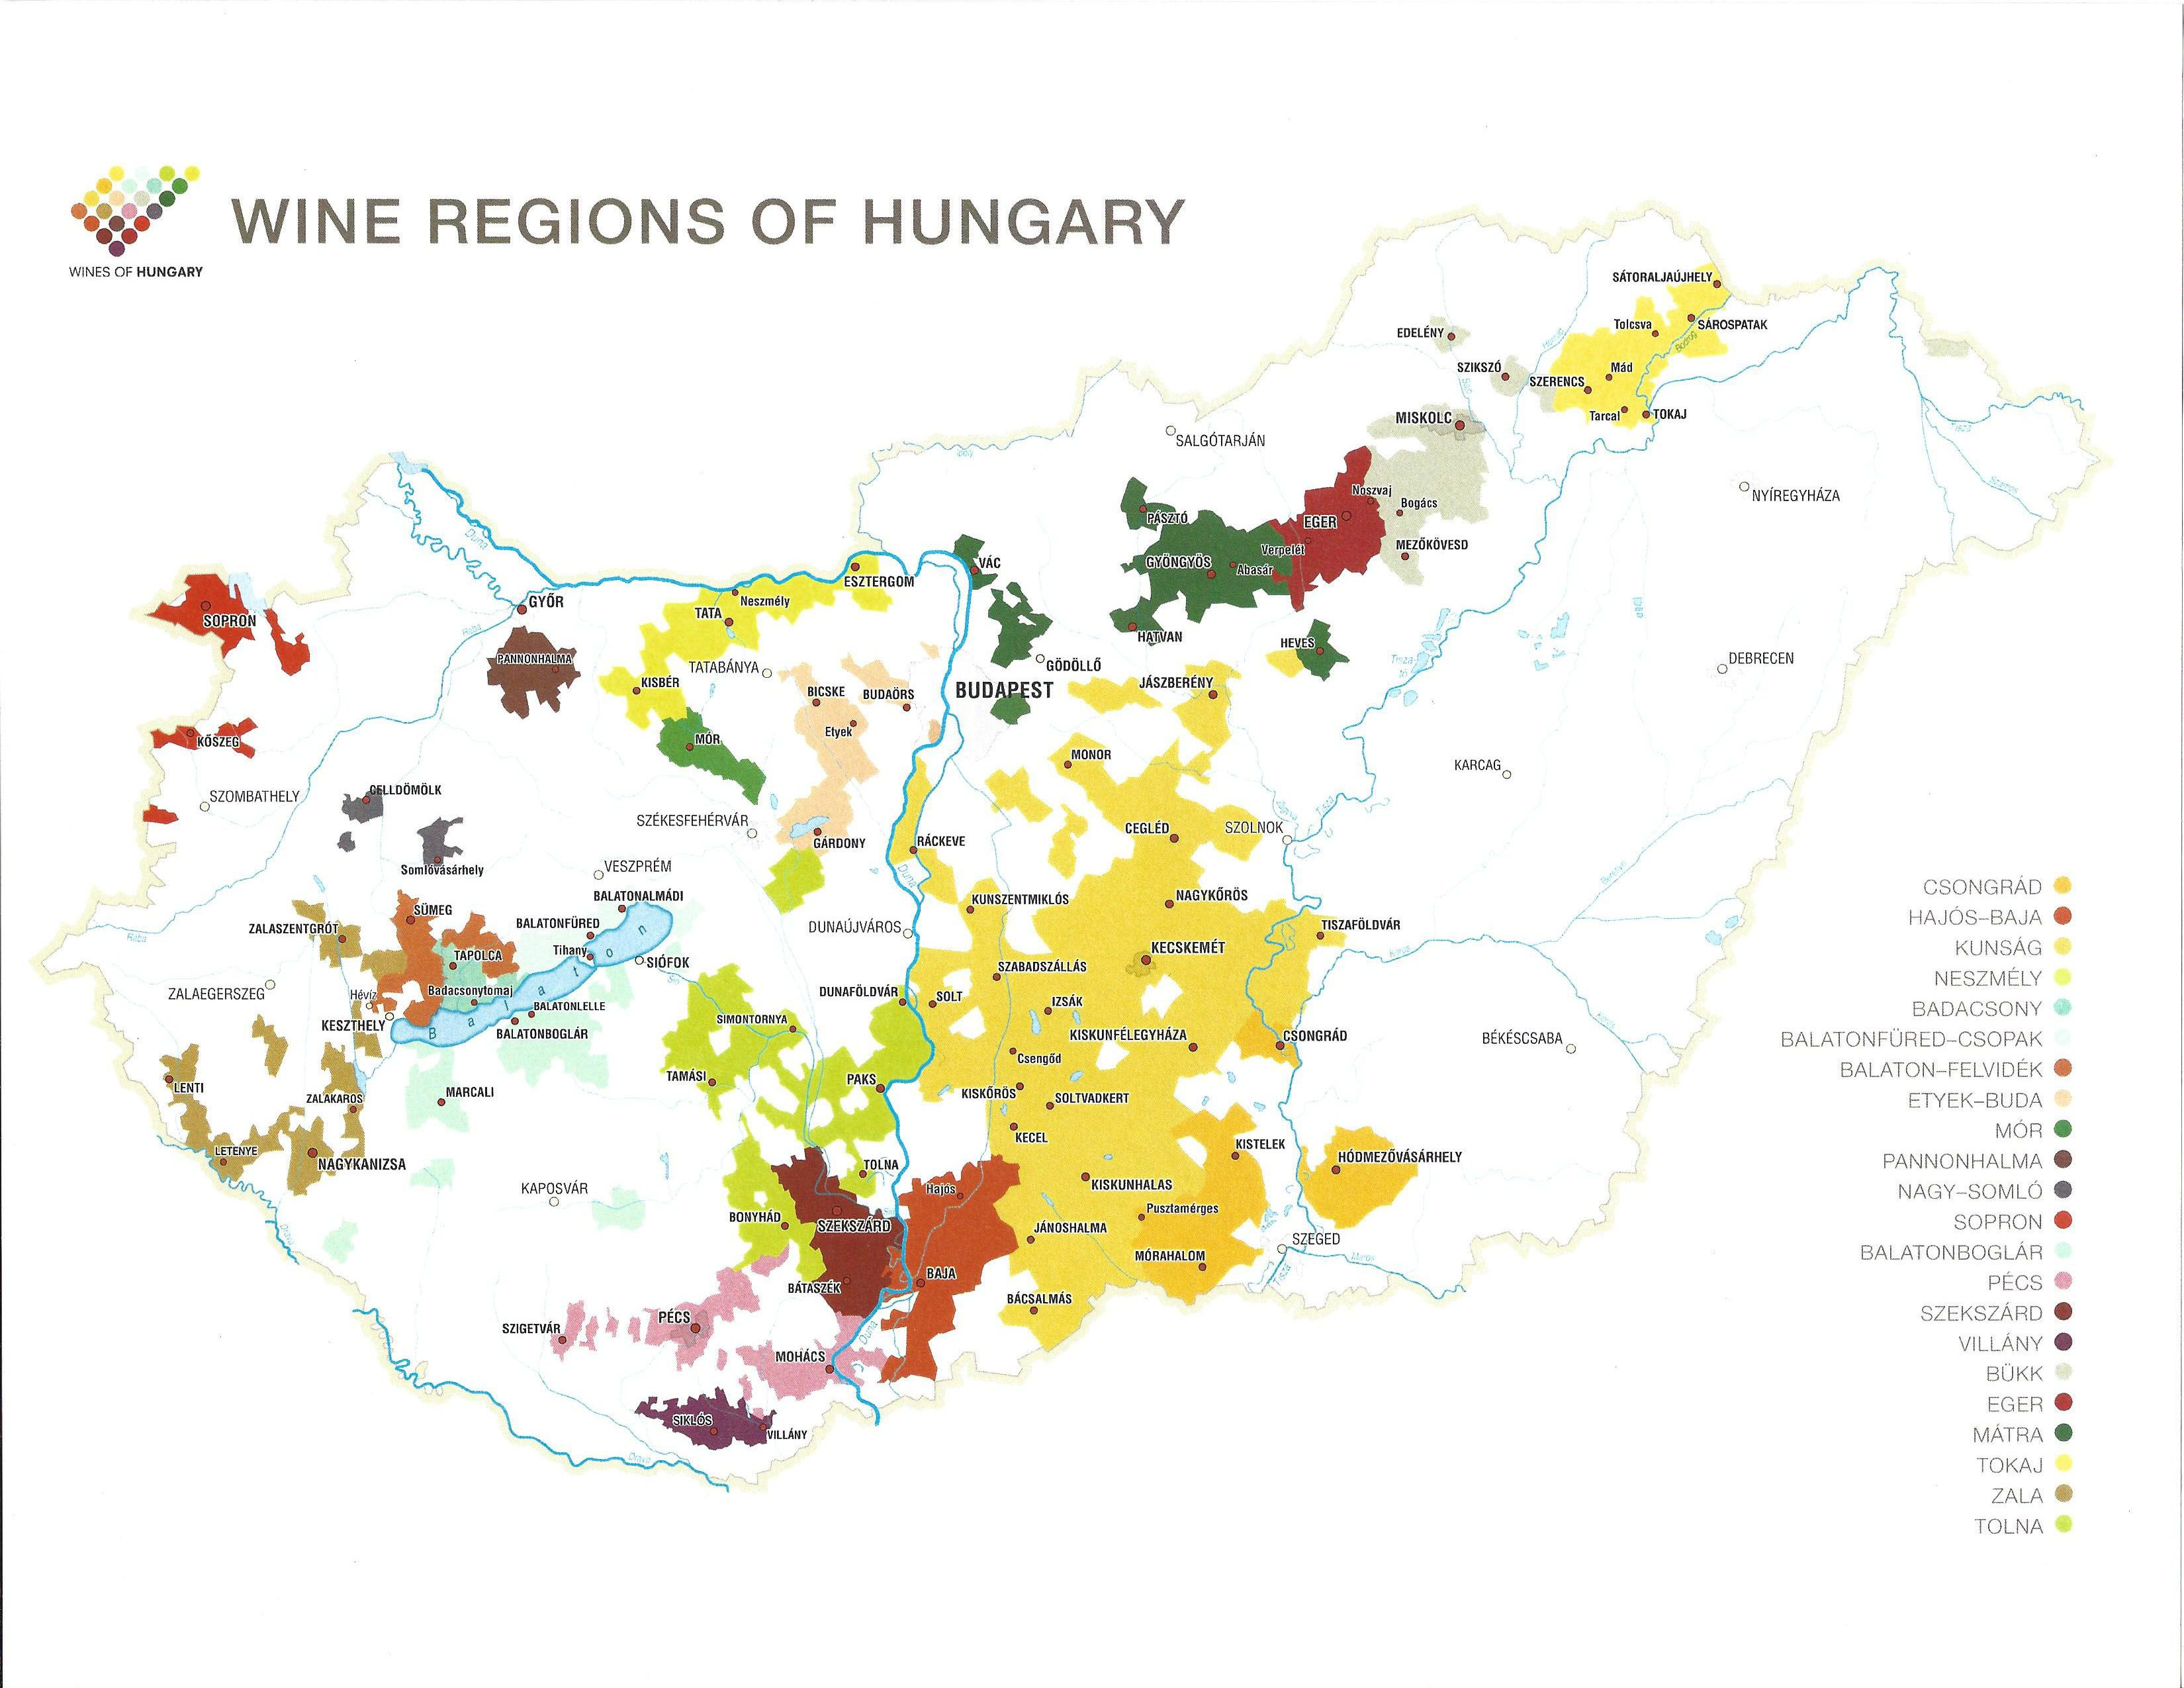 Map of the Wine Regions of Hungary | Wine pics, Wine ... Old World Wine Regions Map on world history map, world map regions of the world, sonoma wine region map, south africa wine region map, hungary wine region map, world wine production map, world regions realms map, geography world regions map, world best red wine, world food map, world europe map, 49th parallel on map, california wine map, world new zealand map, world vintage map, world cultural regions map, world oregon map, world soils map, germany wine region map, world fashion capitals map,